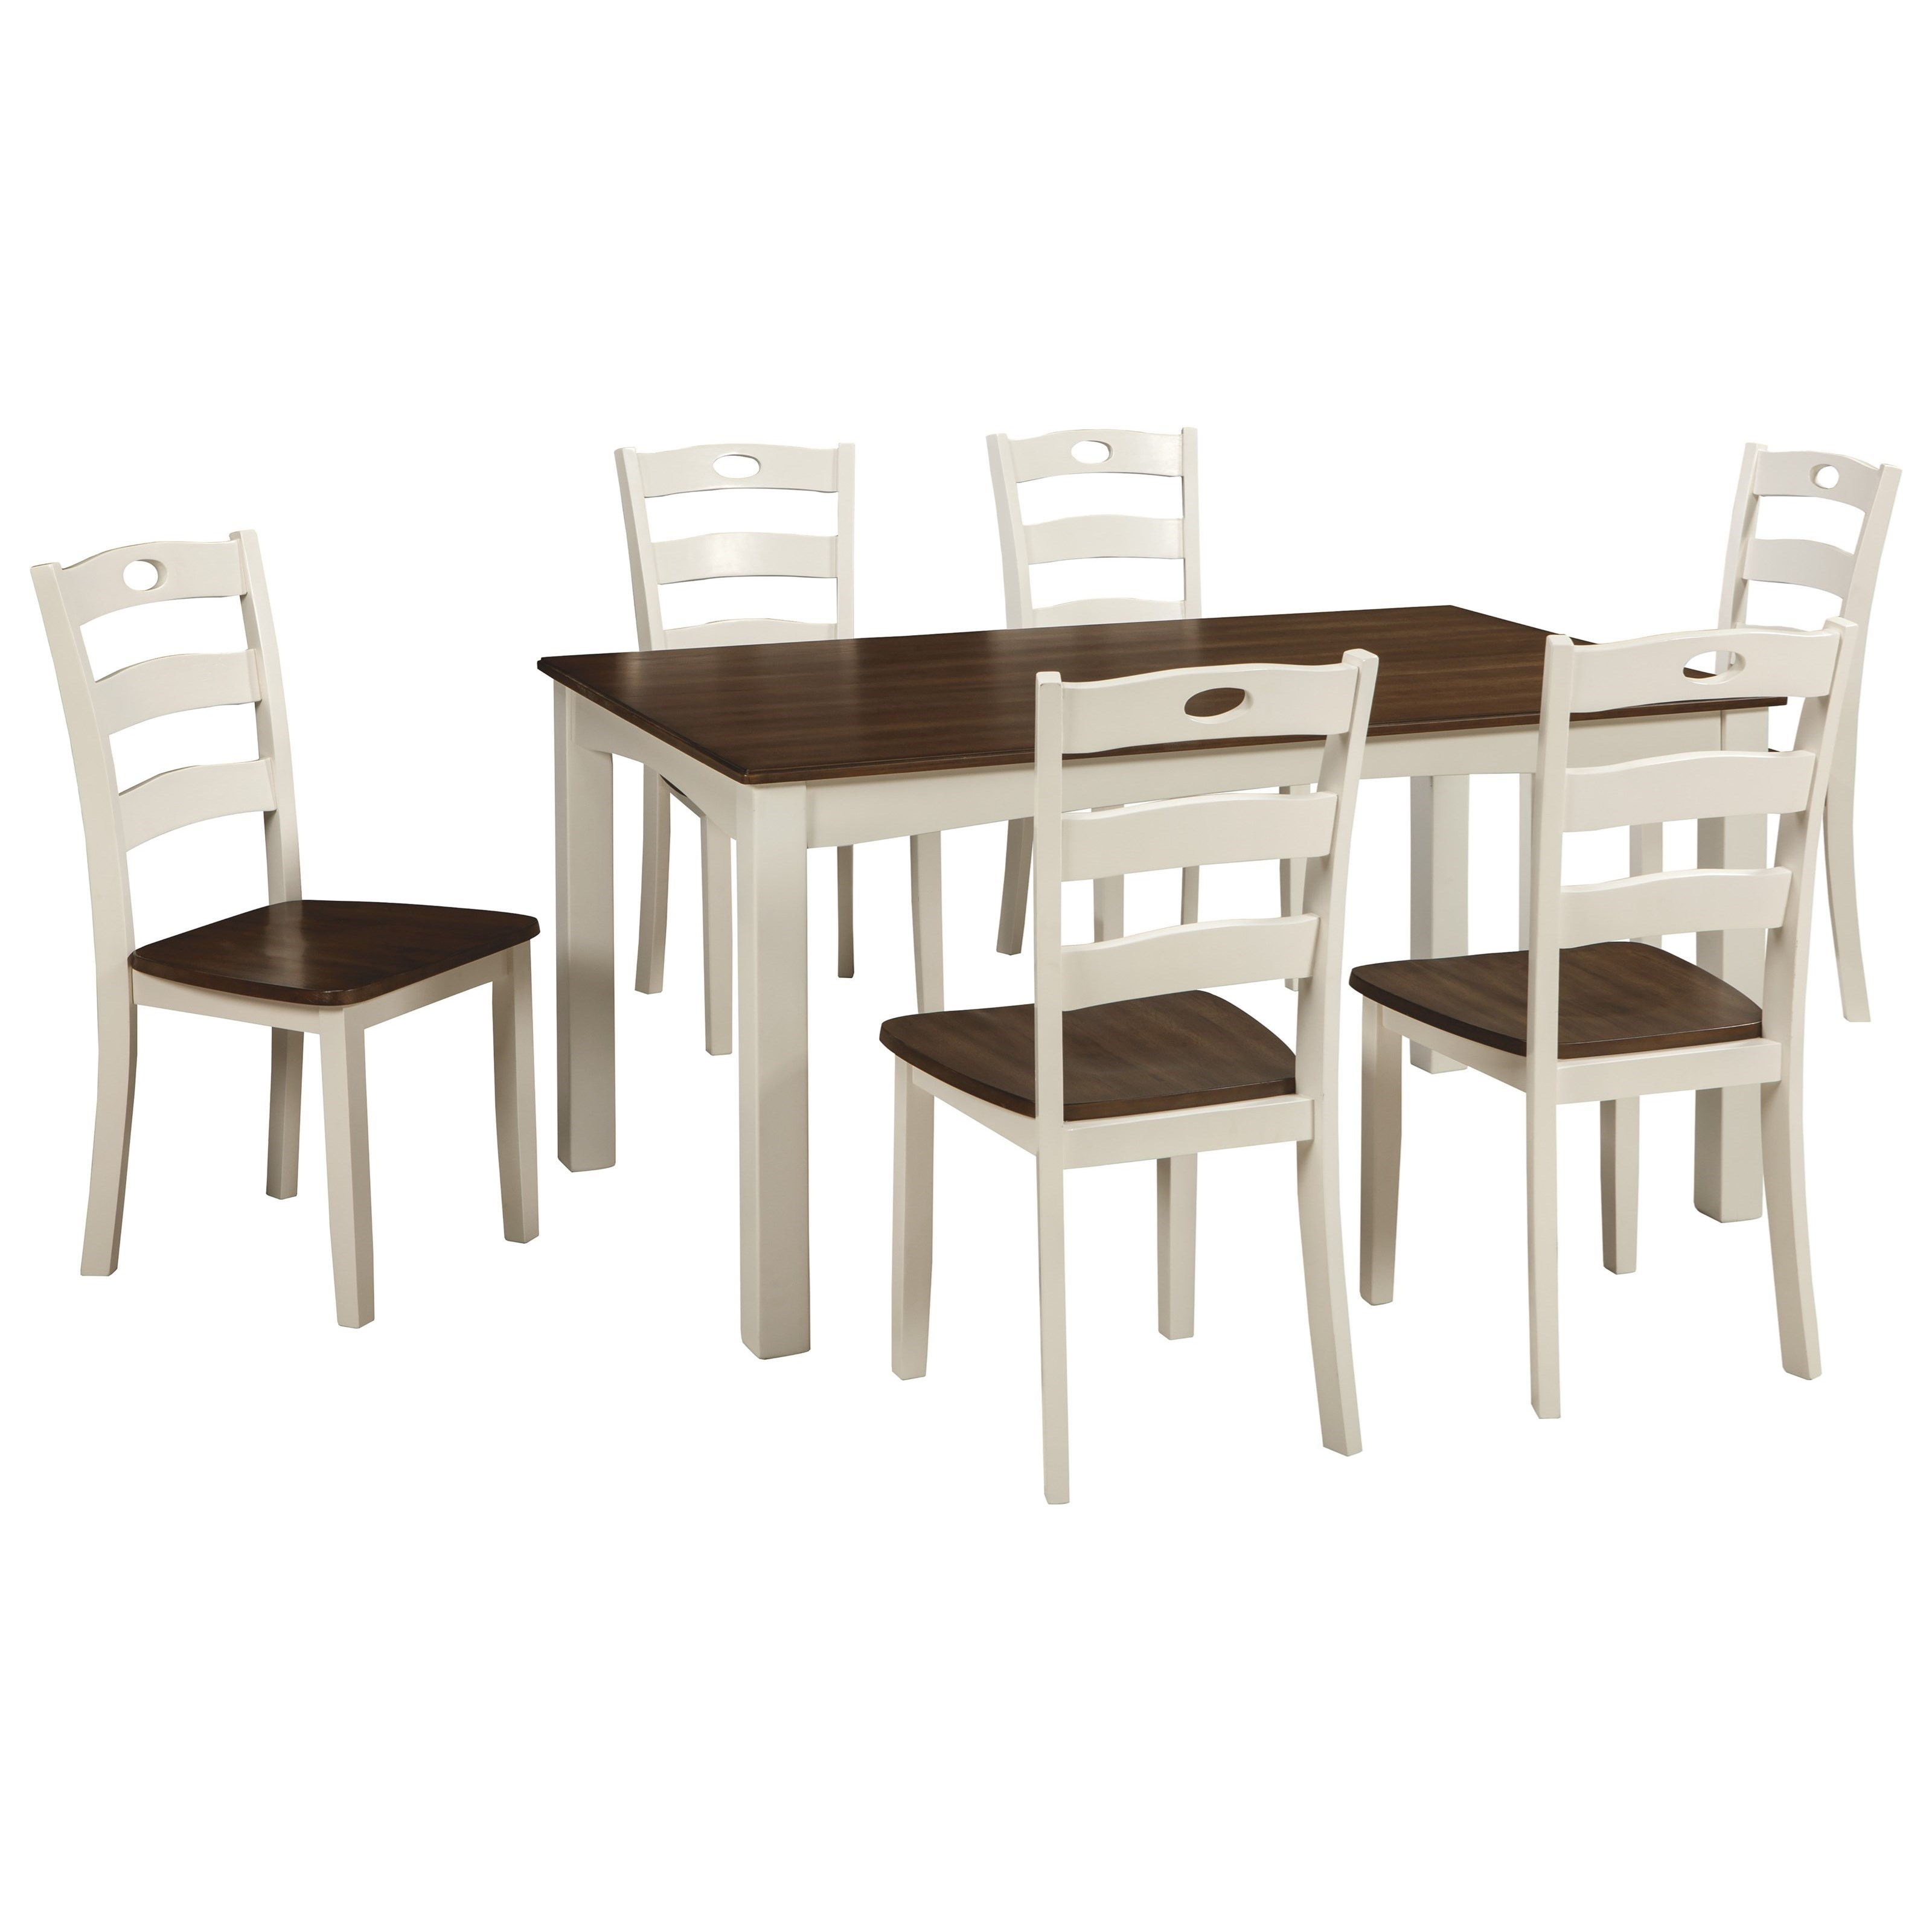 Woodanville 7-Piece Dining Room Table Set by Signature Design by Ashley at A1 Furniture & Mattress